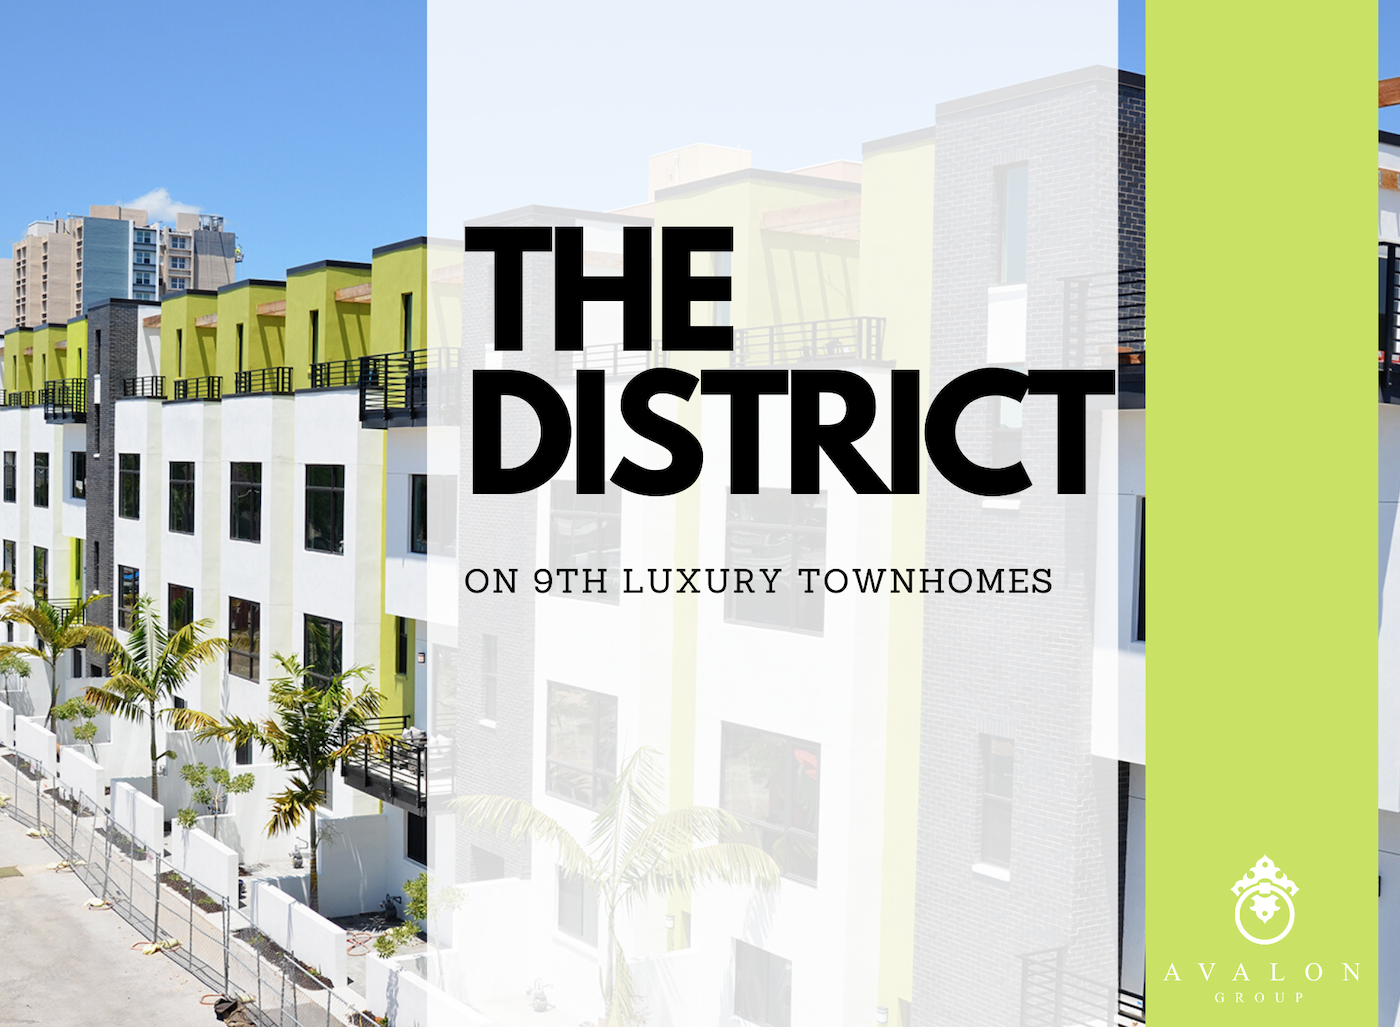 "The cover photo for the blog ""The District on 9th Luxury Townhomes in St Petersburg Fl"" The townhomes are modern clean architecture painted white and neon green. The window trim is black and there is a roof deck on the top floors."